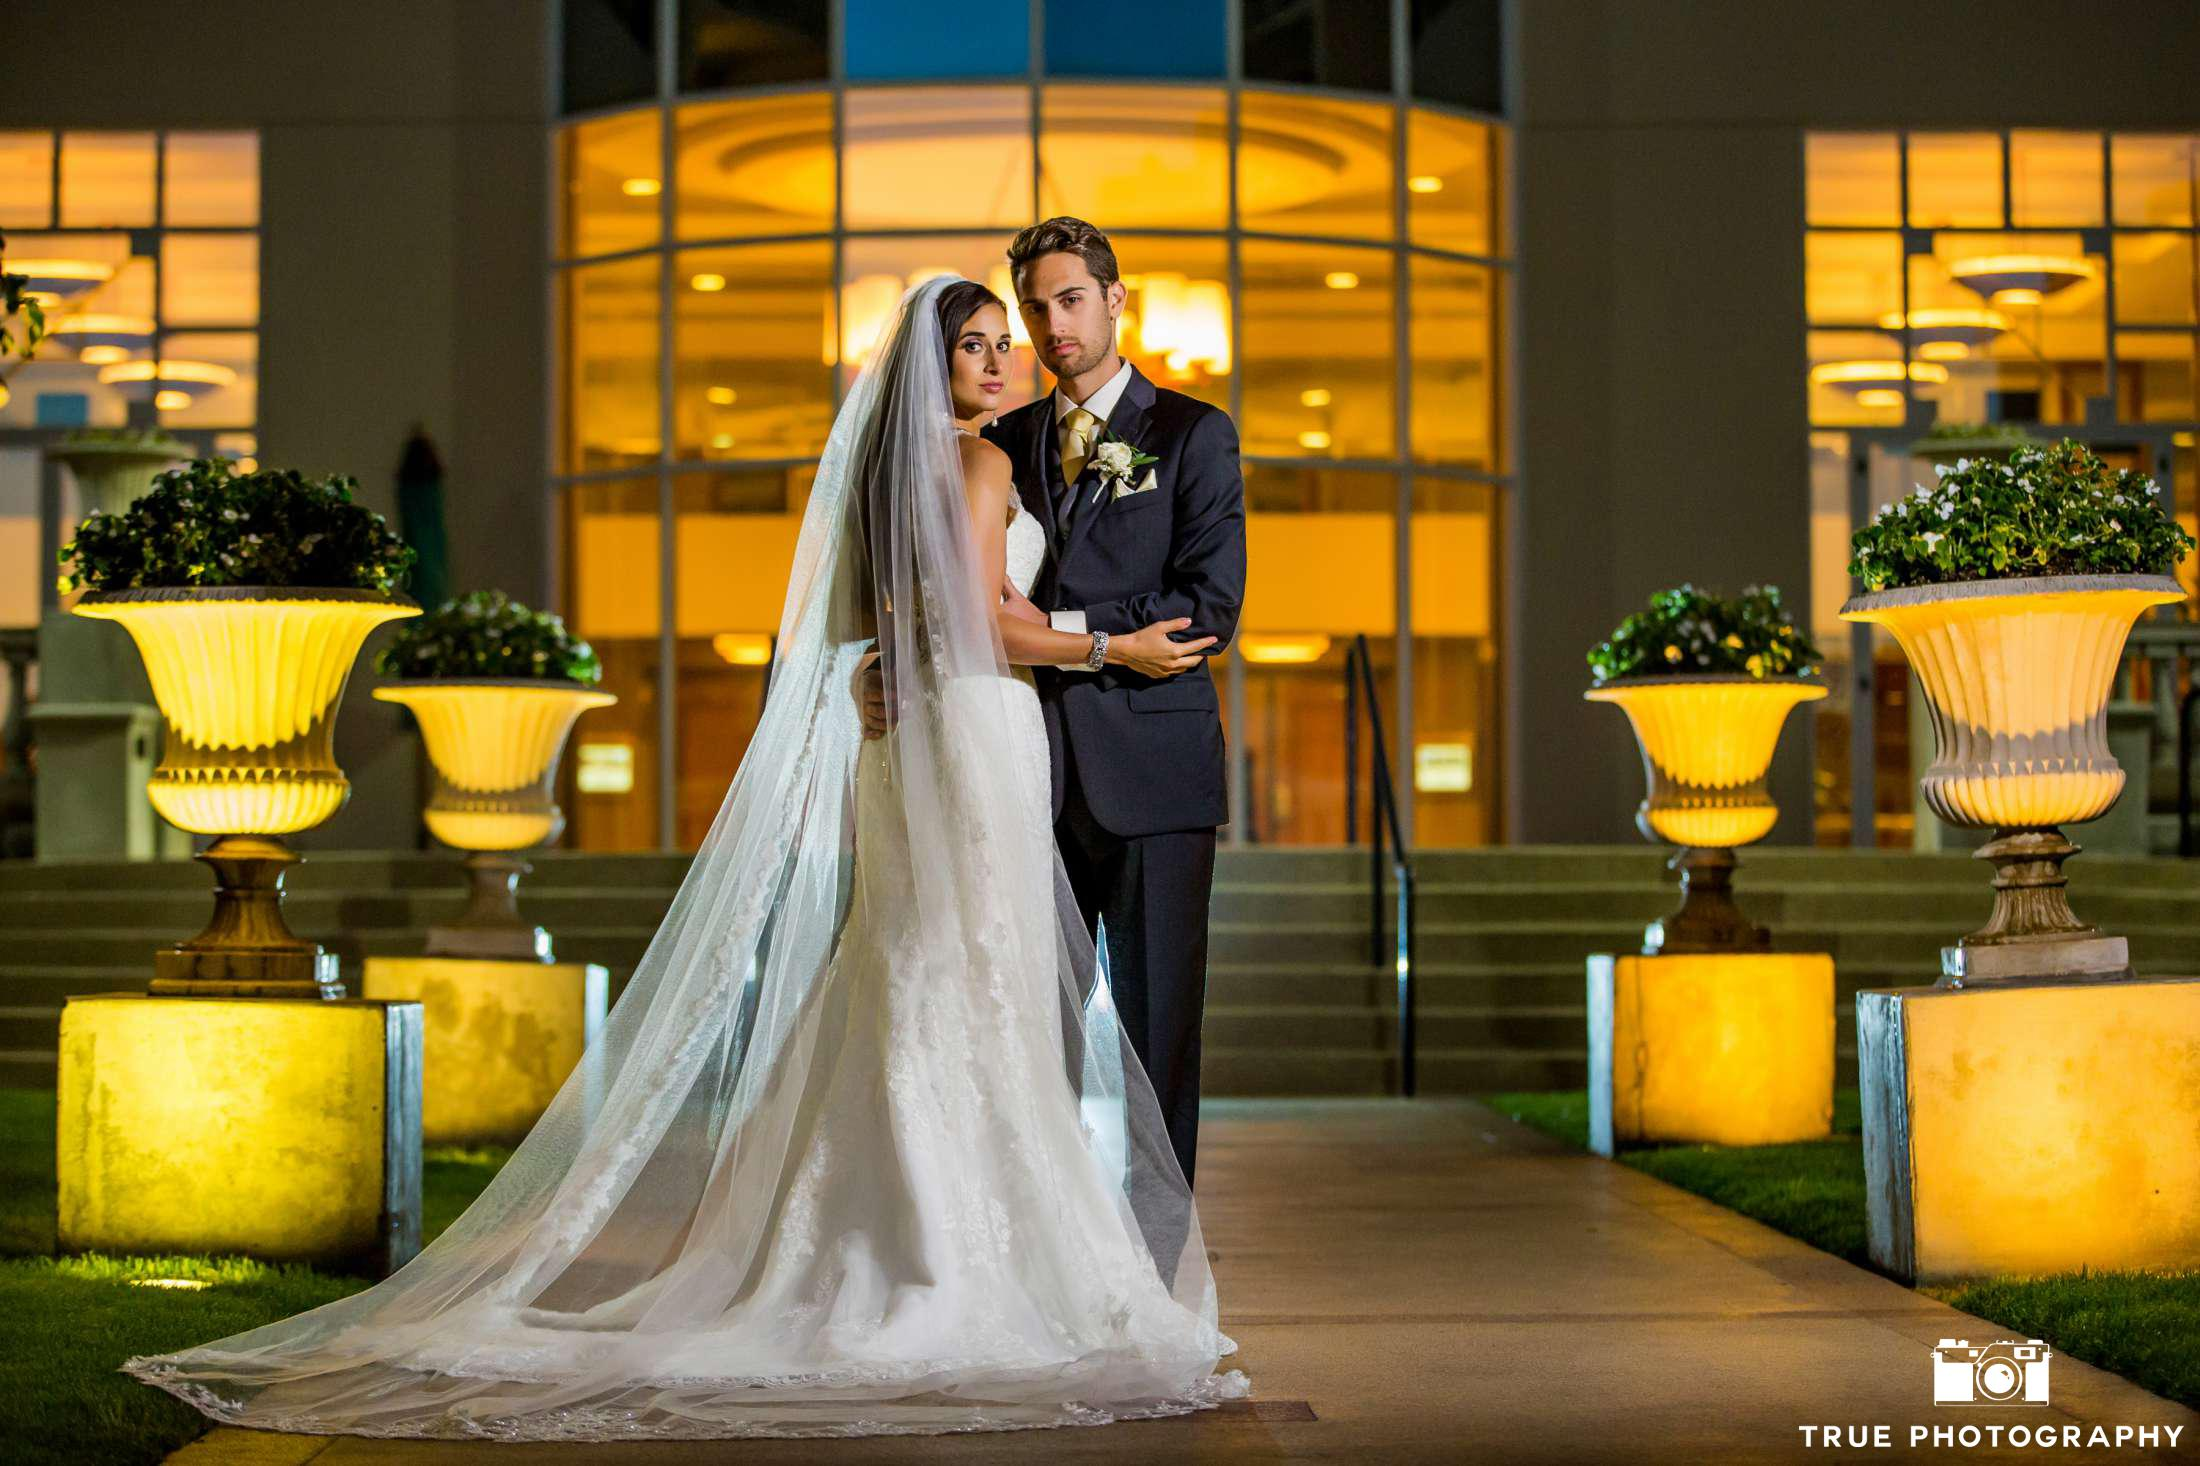 All photos by  True Photography Weddings